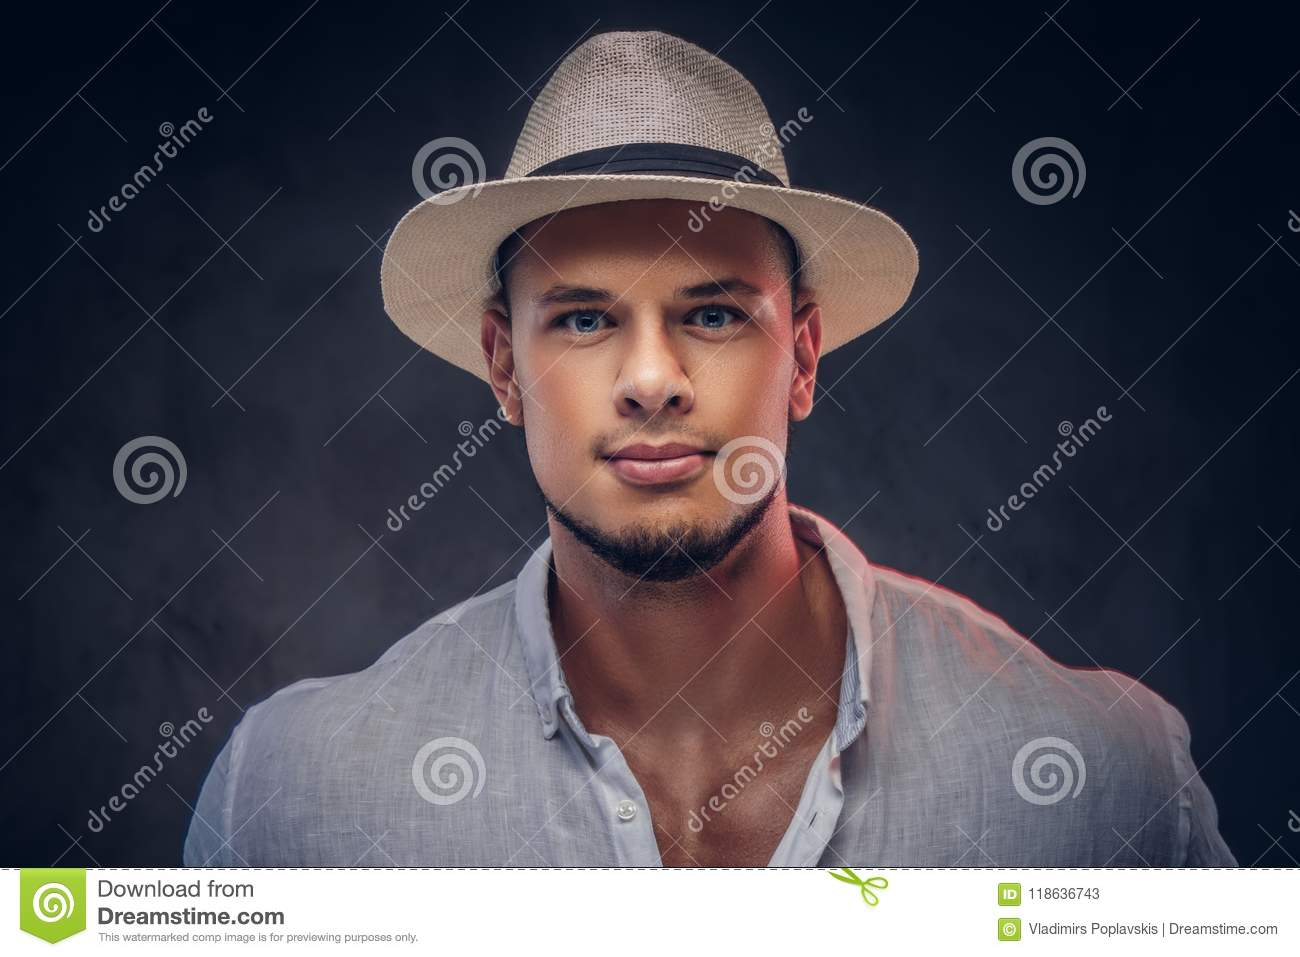 0db357f5fe54de Close-up portrait of a handsome fashionable bearded man in a white shirt  and panama hat. Isolated on dark background.